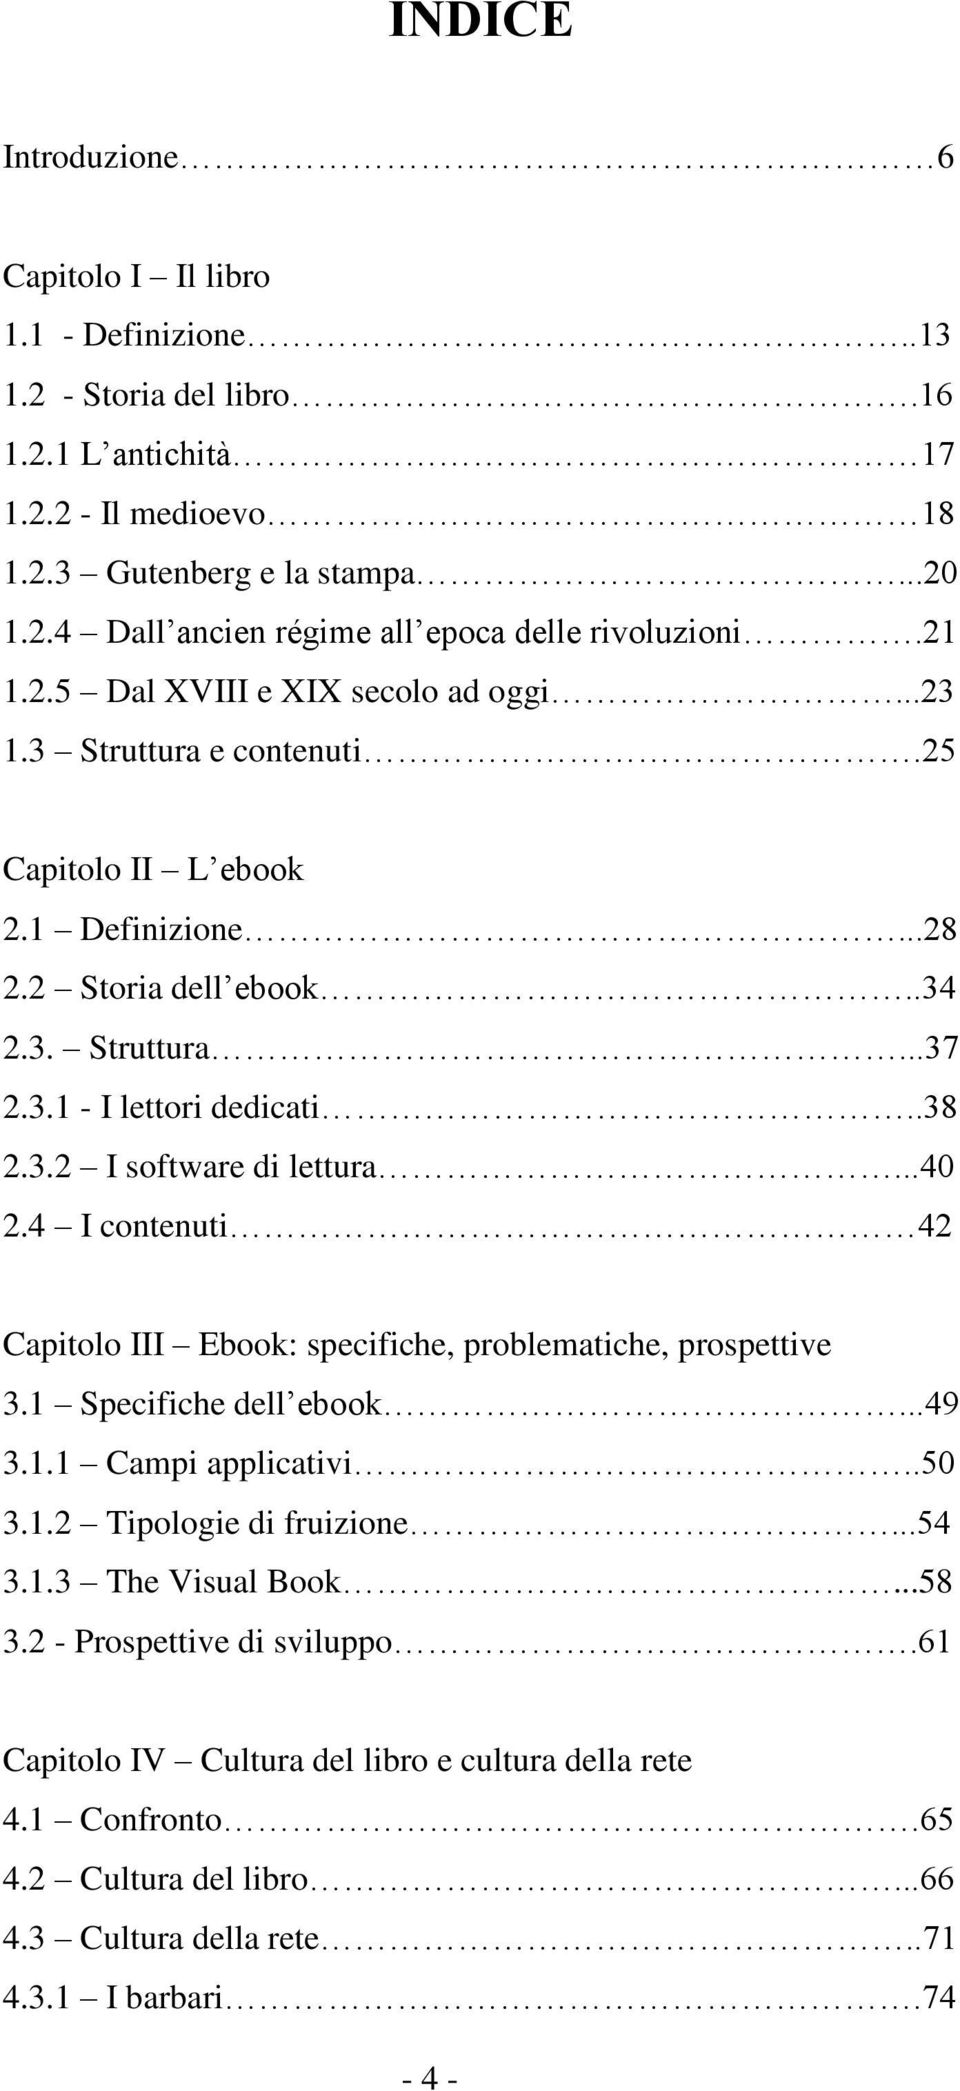 ..40 2.4 I contenuti 42 Capitolo III Ebook: specifiche, problematiche, prospettive 3.1 Specifiche dell ebook...49 3.1.1 Campi applicativi..50 3.1.2 Tipologie di fruizione...54 3.1.3 The Visual Book.